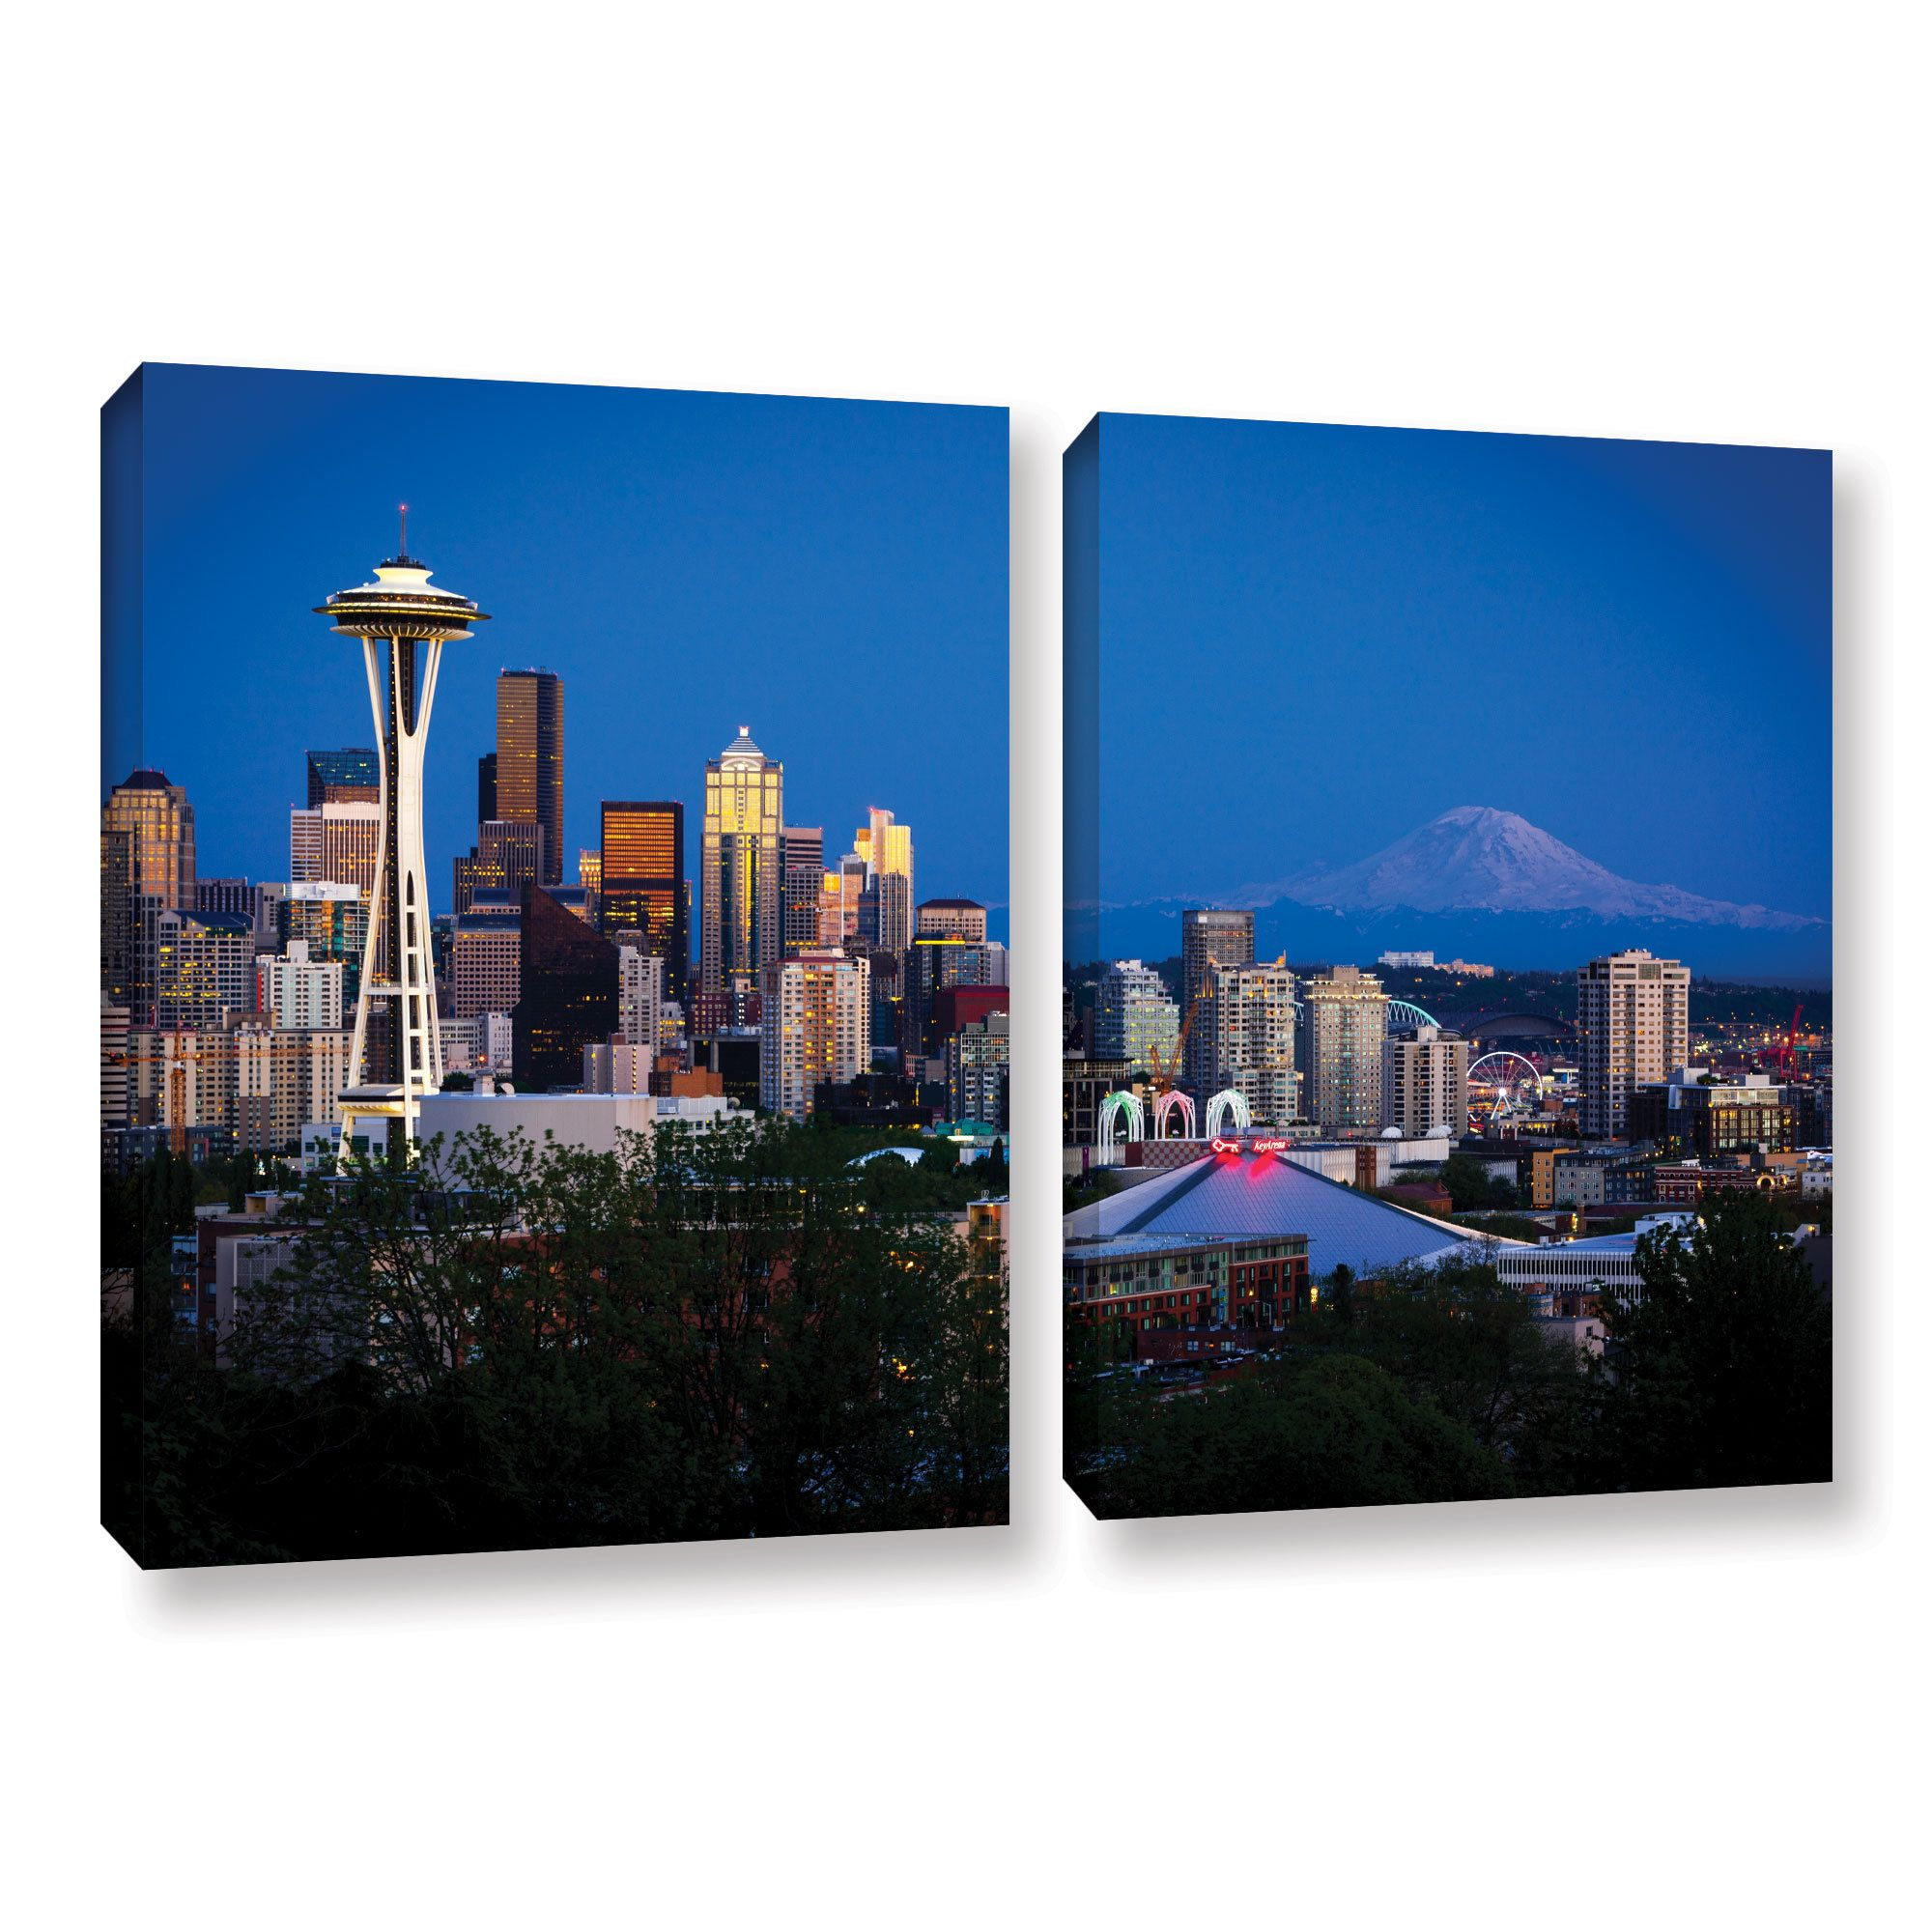 ArtWall Cody York's Seattle and Mt. Rainier, 2 Piece Gallery Wrapped Set